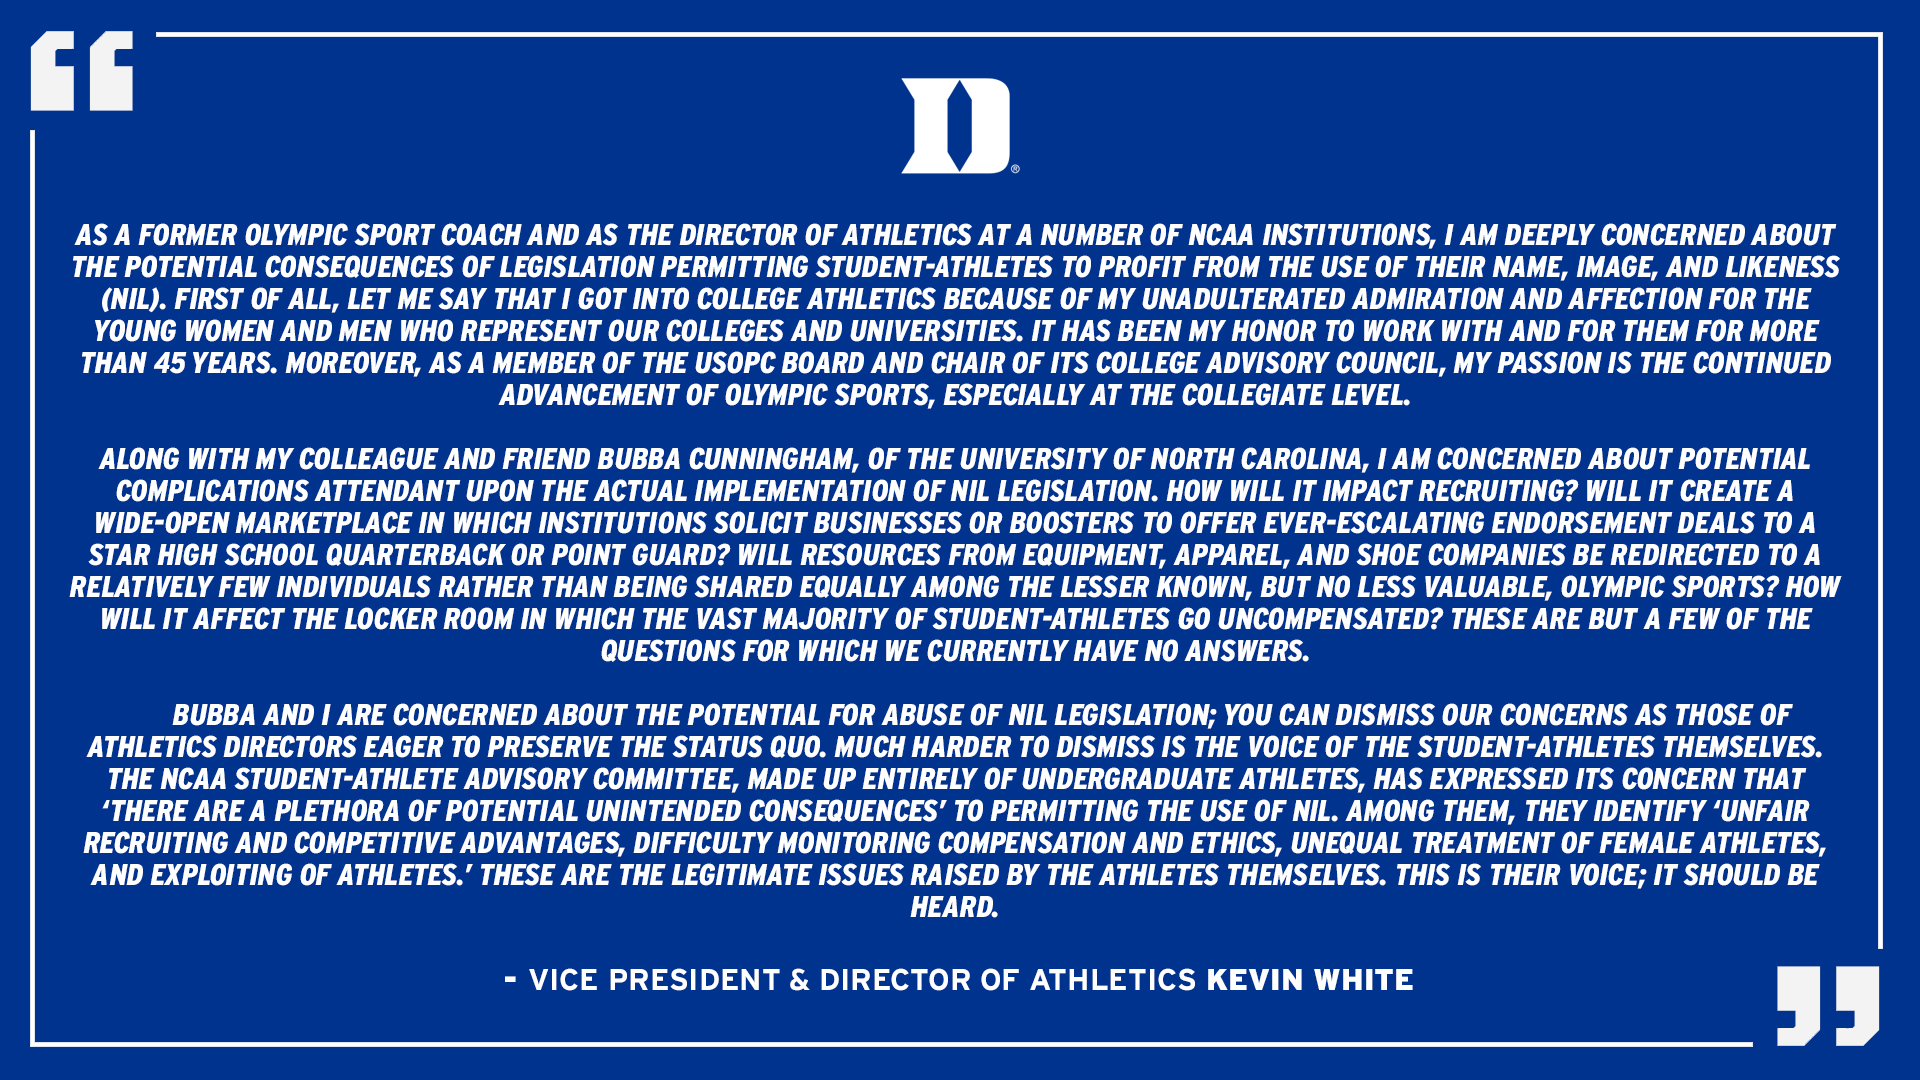 Quote graphic with a statement from Duke Vice President and Director of Athletics Kevin White on Name, Image and Likeness legislation.